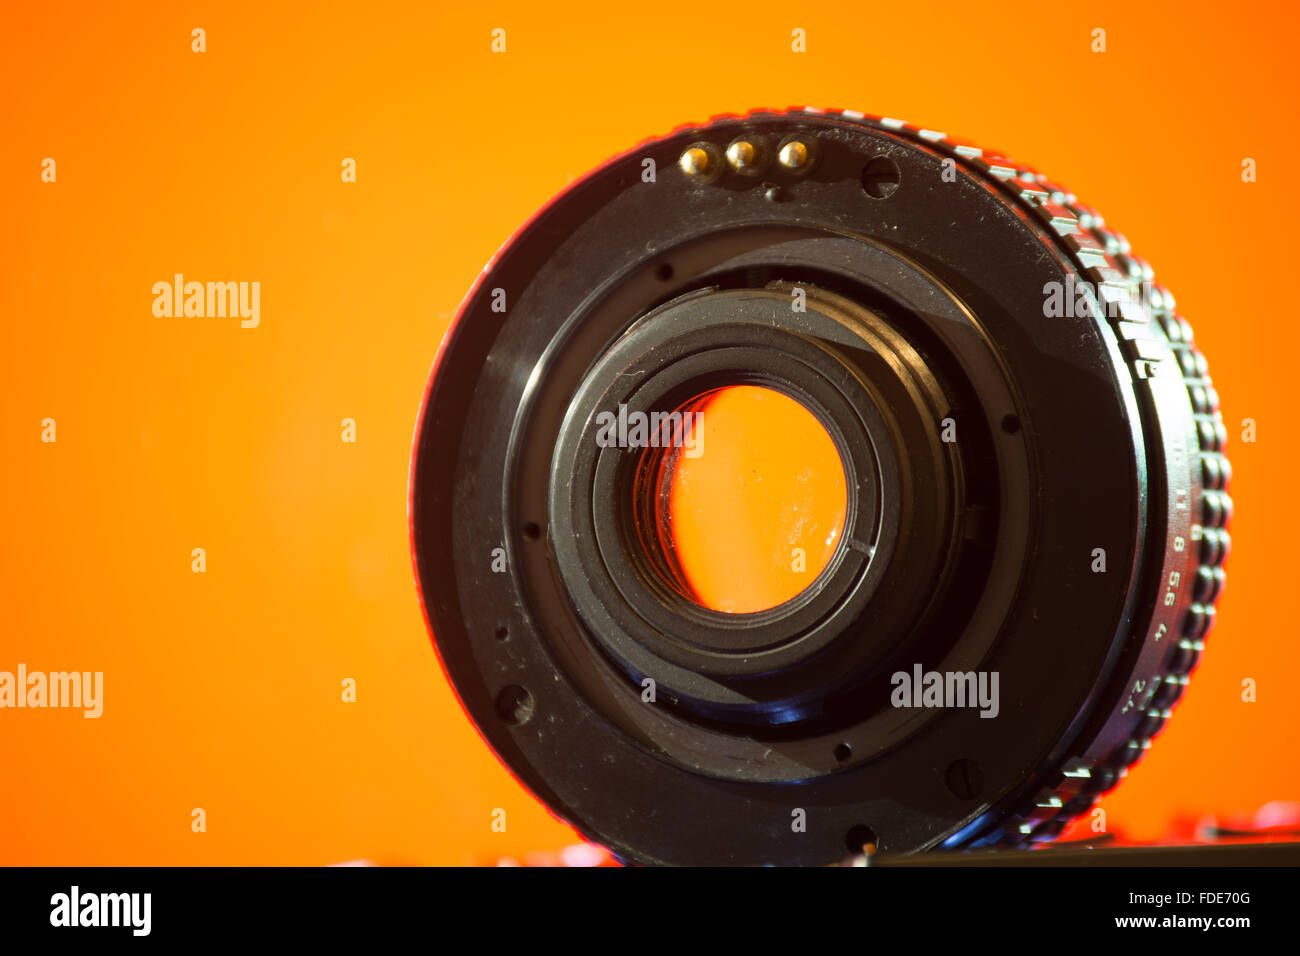 A lens on a orange background, viewed from the side of the mount. - Stock Image